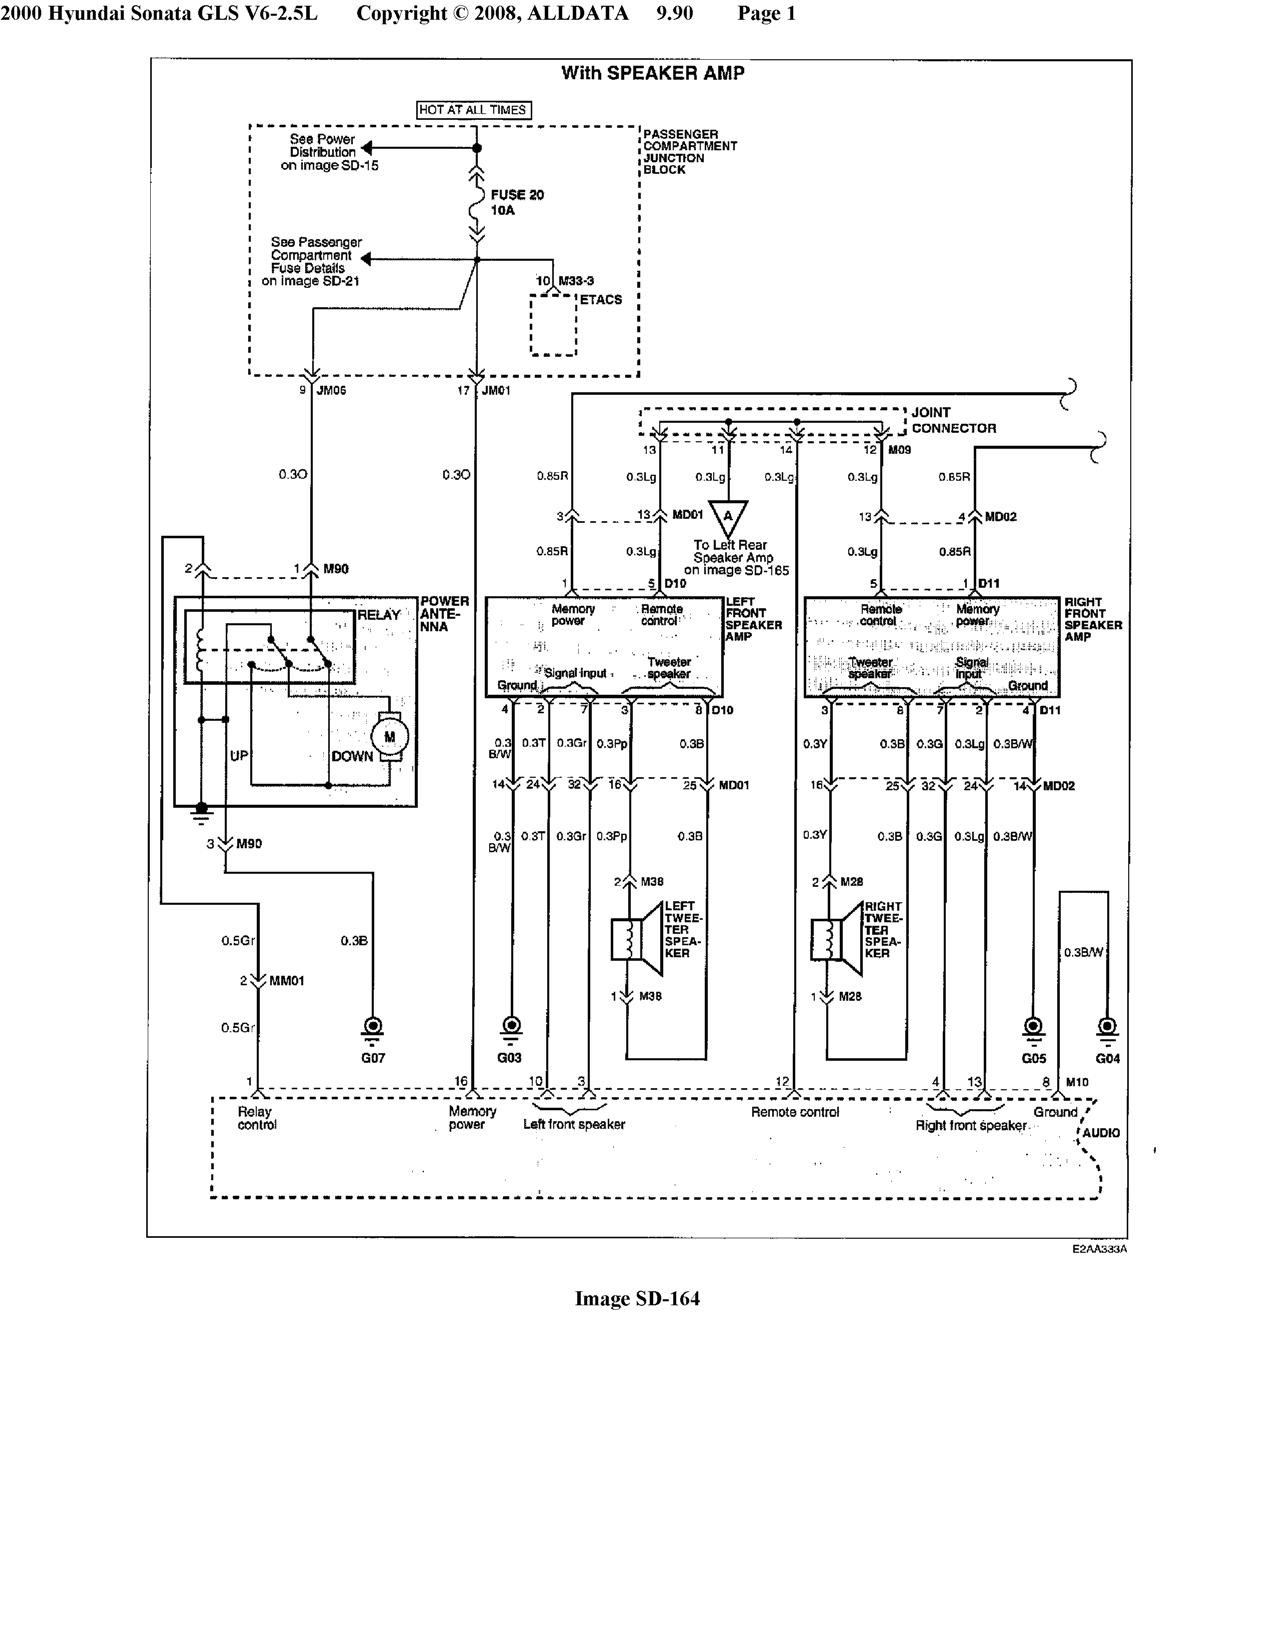 2004 Jettum Speaker Wiring | Wiring Diagram Database